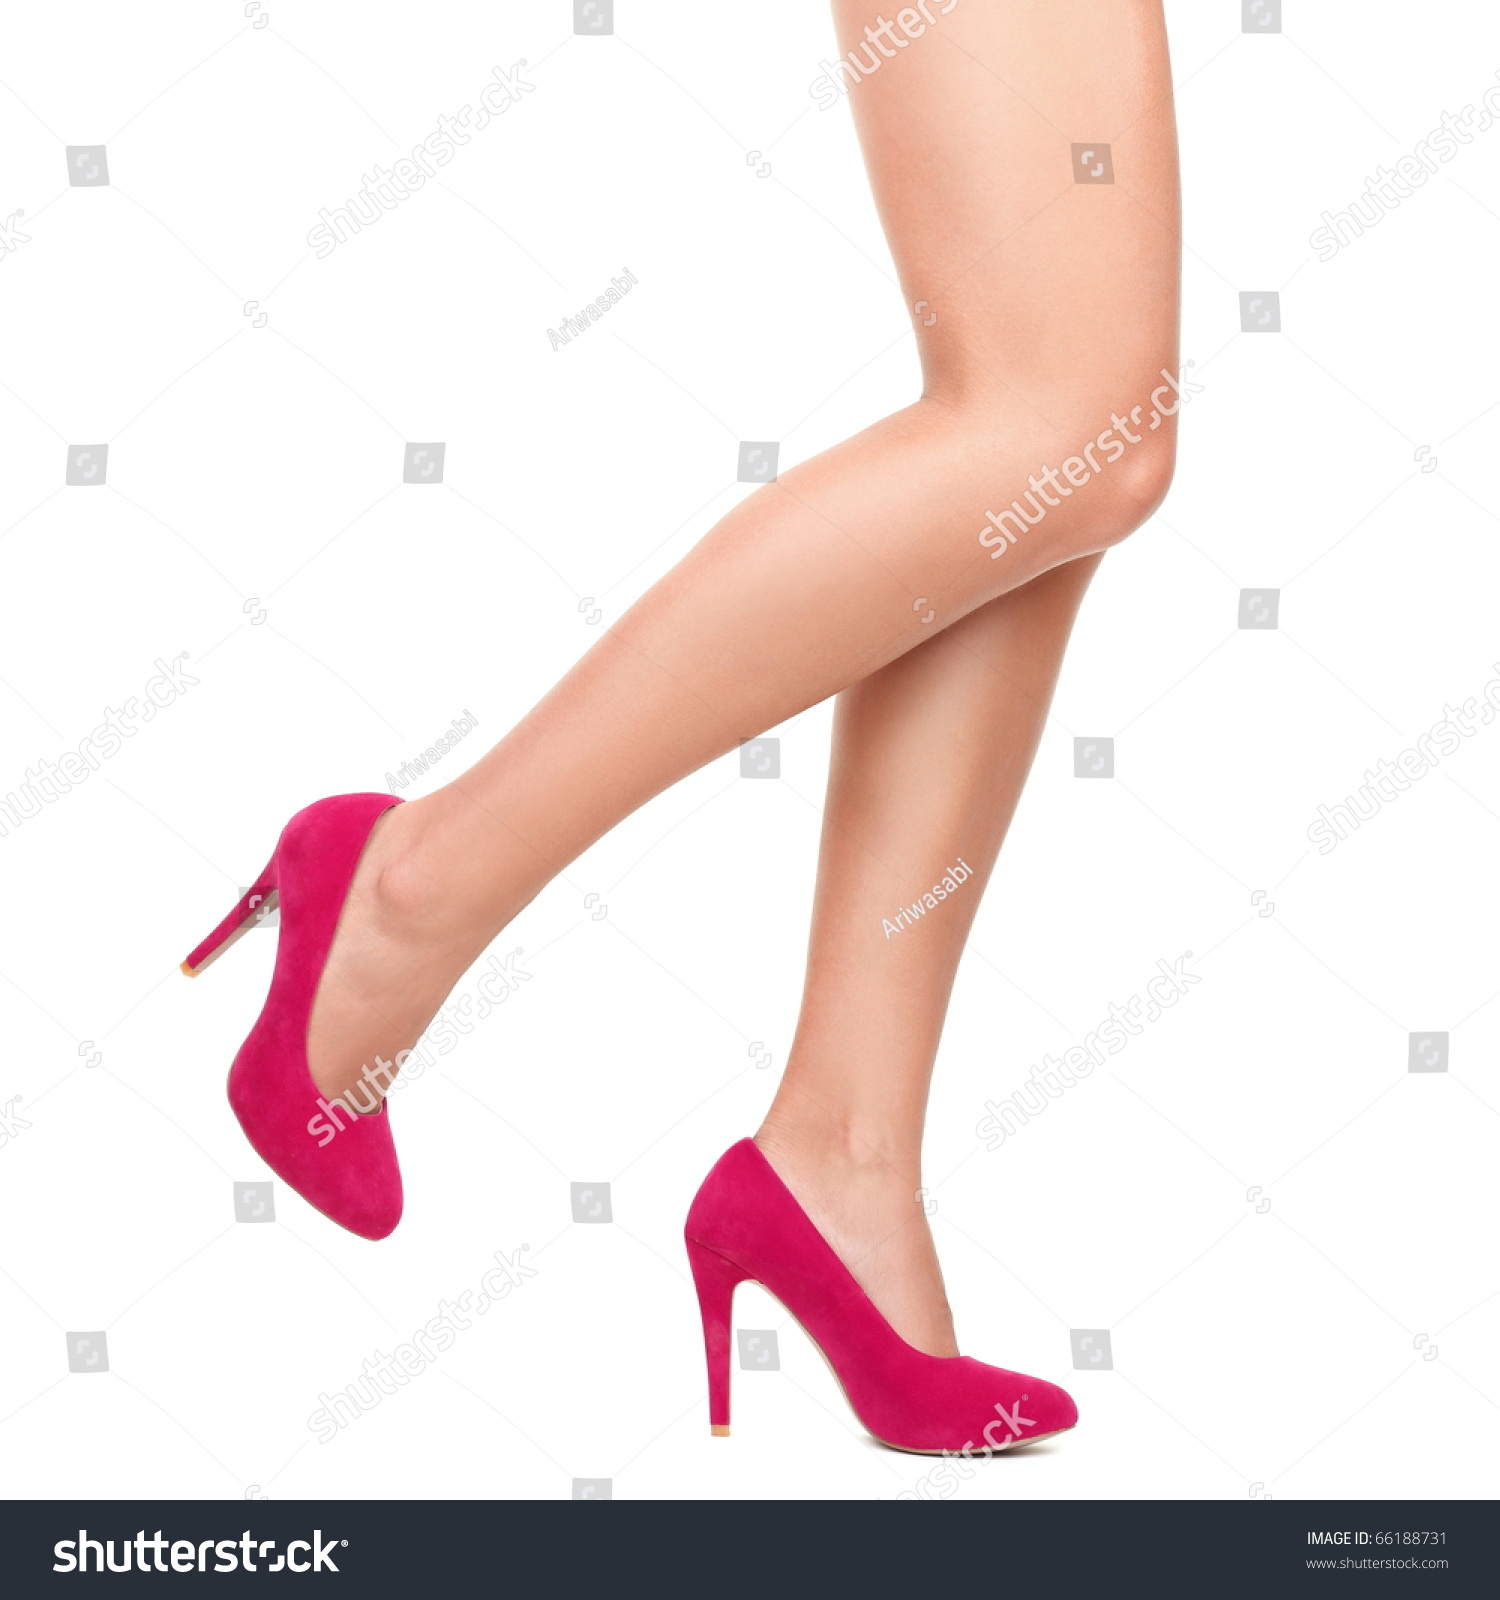 Sexy Legs Pink High Heels Isolated Stock Photo 66188731 - Shutterstock